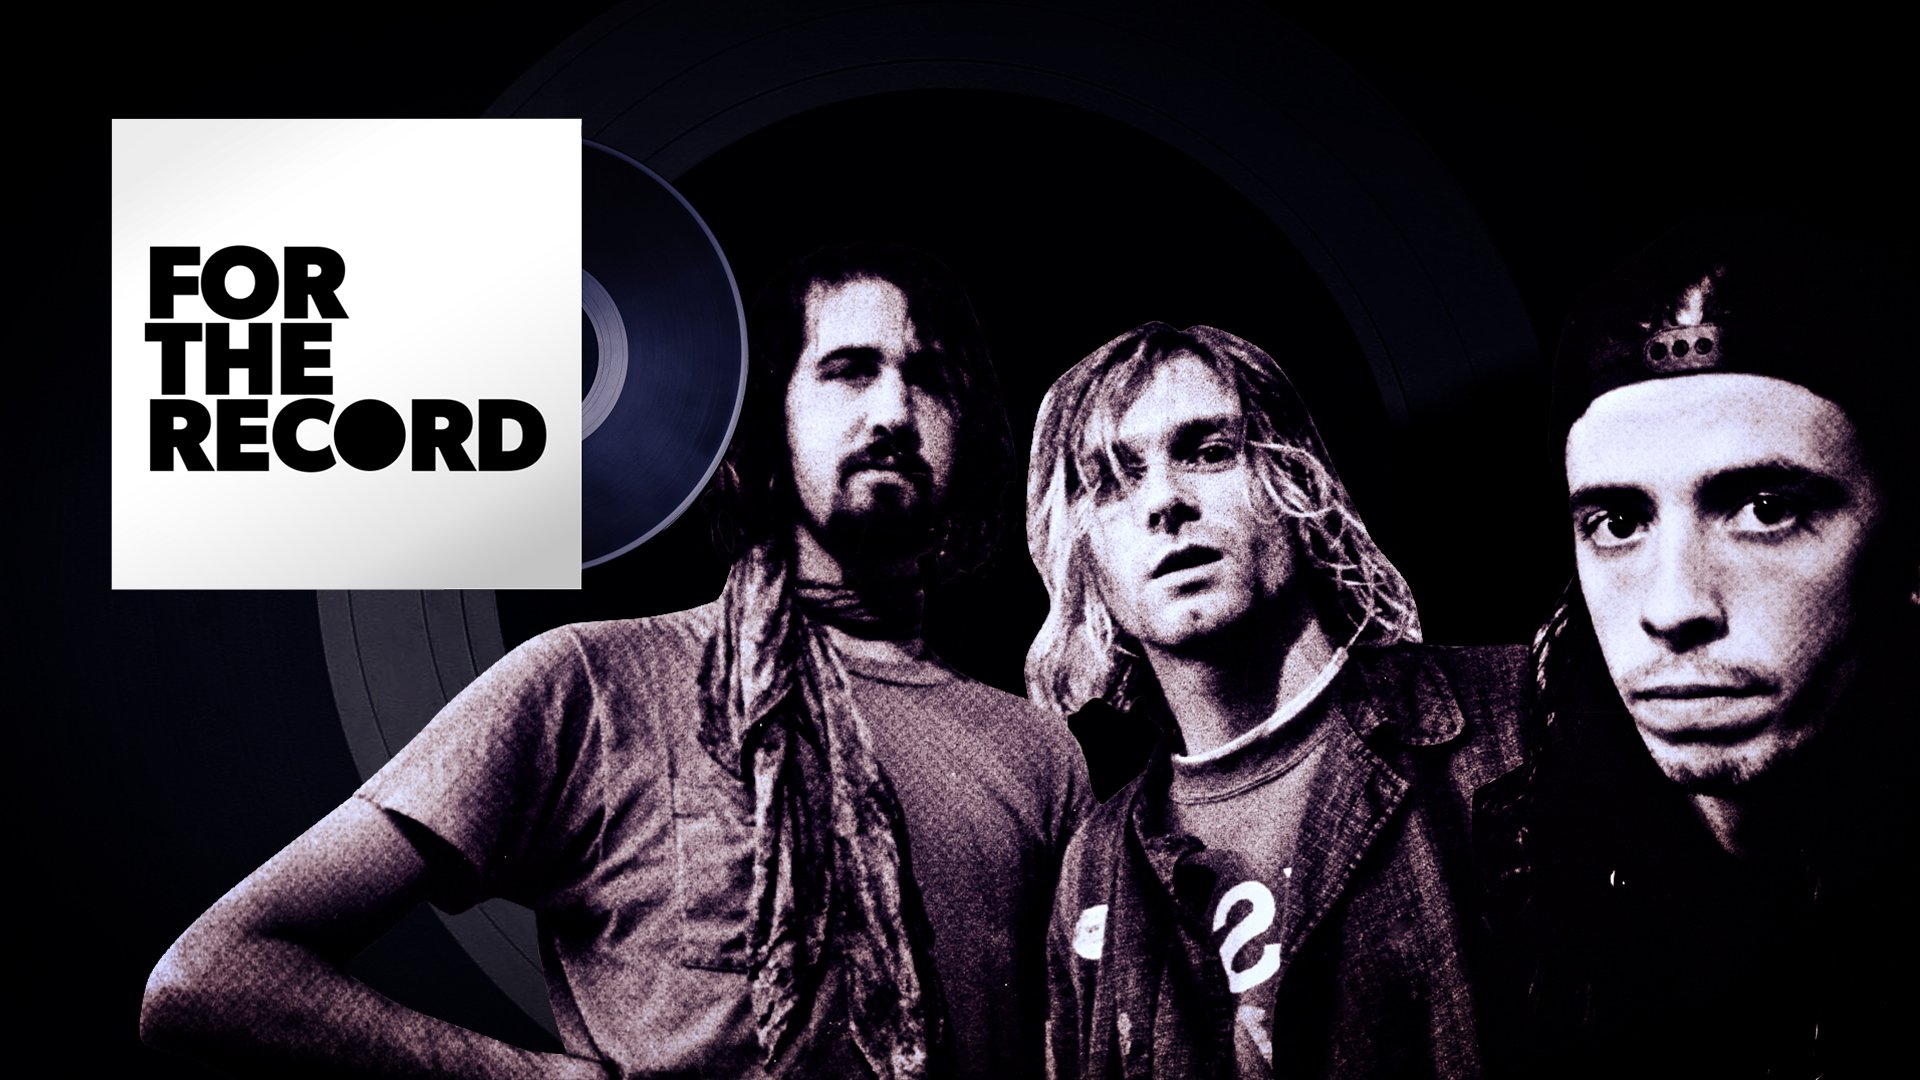 'Nevermind' took @Nirvana from local heroes in Seattle to rockers in the nation's public eye, bringing the grunge sound and other bands along with them. https://t.co/RISQqCAgCw